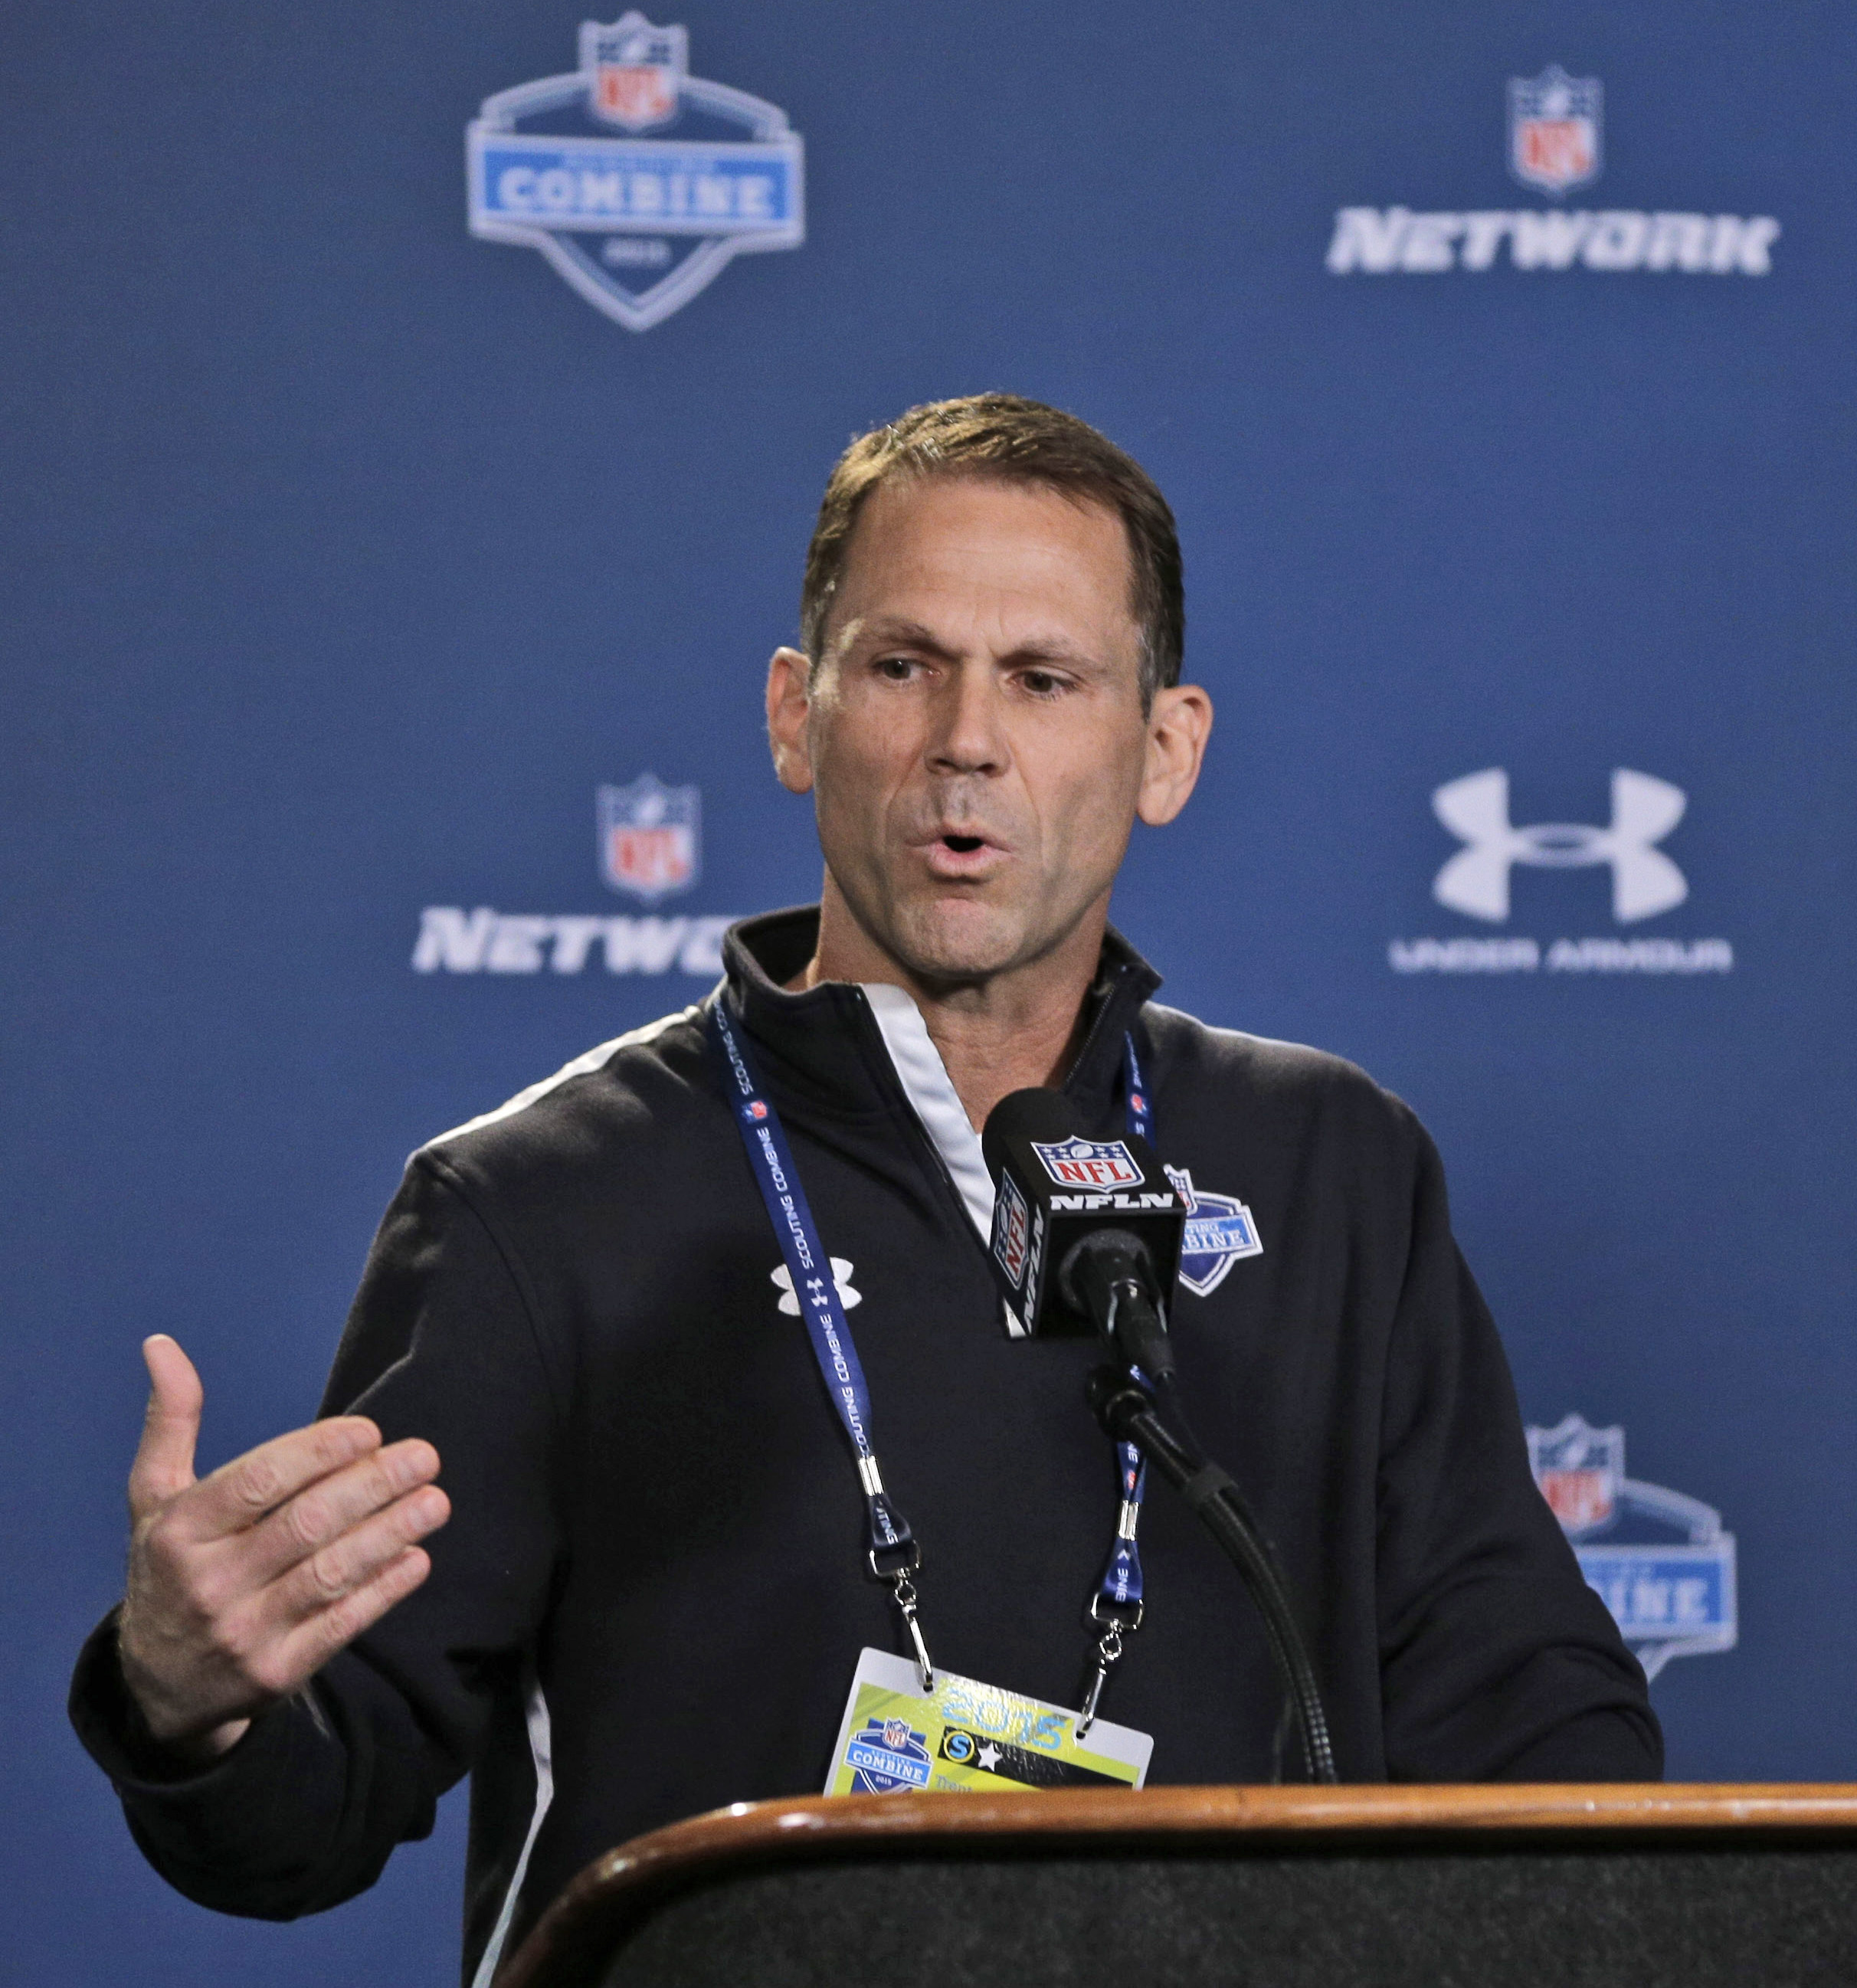 FILE - In this Feb. 18, 2015, file photo, San Francisco 49ers general manager Trent Baalke answers a question during a news conference at the NFL football scouting combine in Indianapolis. Given a rash of off-field issues in recent years, Baalke now faces